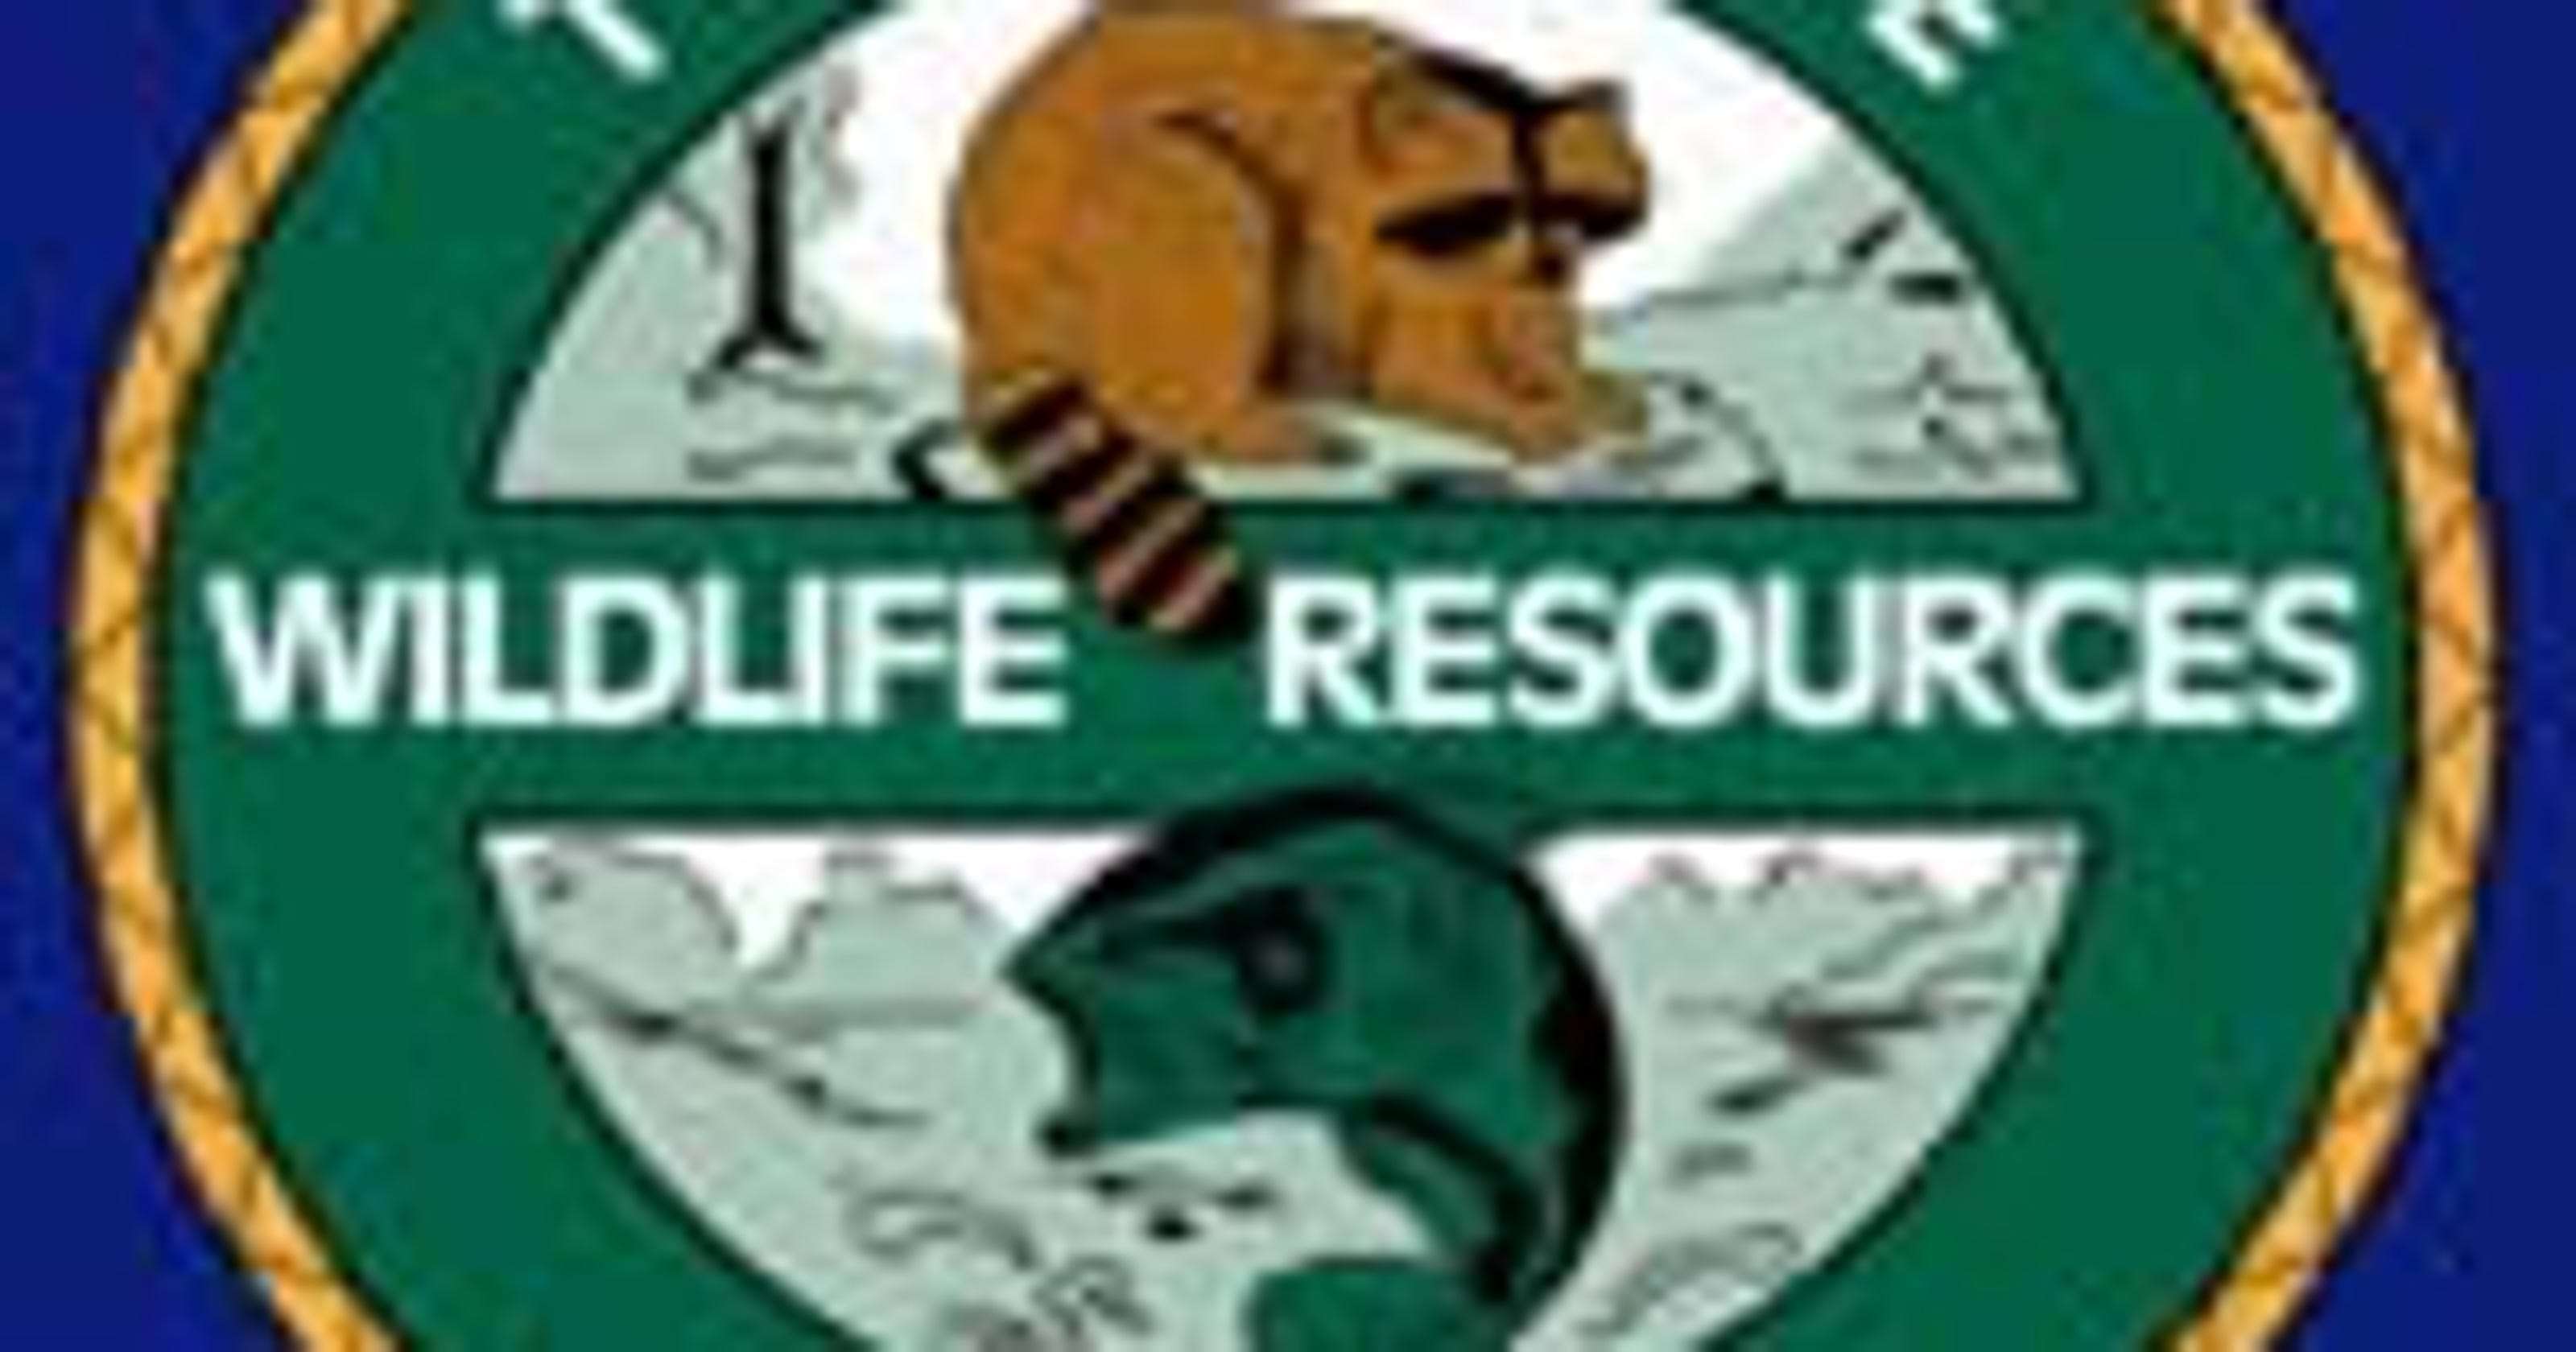 Tennessee hunting, fishing license fees to rise